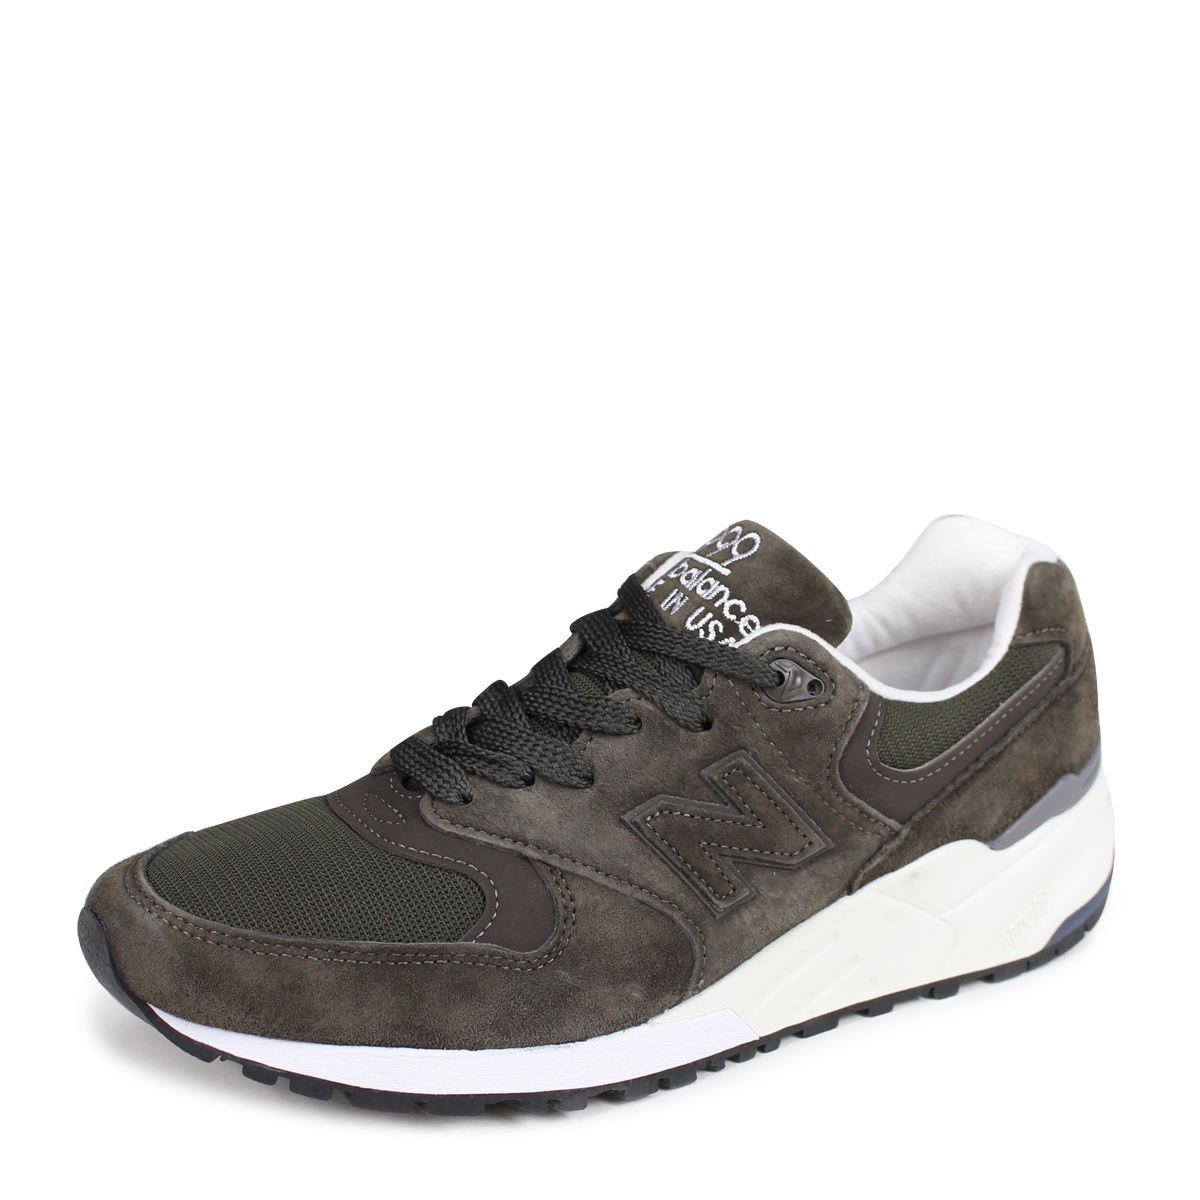 quality design cfbe9 f2edd new balance M999NJ New Balance 999 men's sneakers D Wise MADE IN USA dark  green [189]